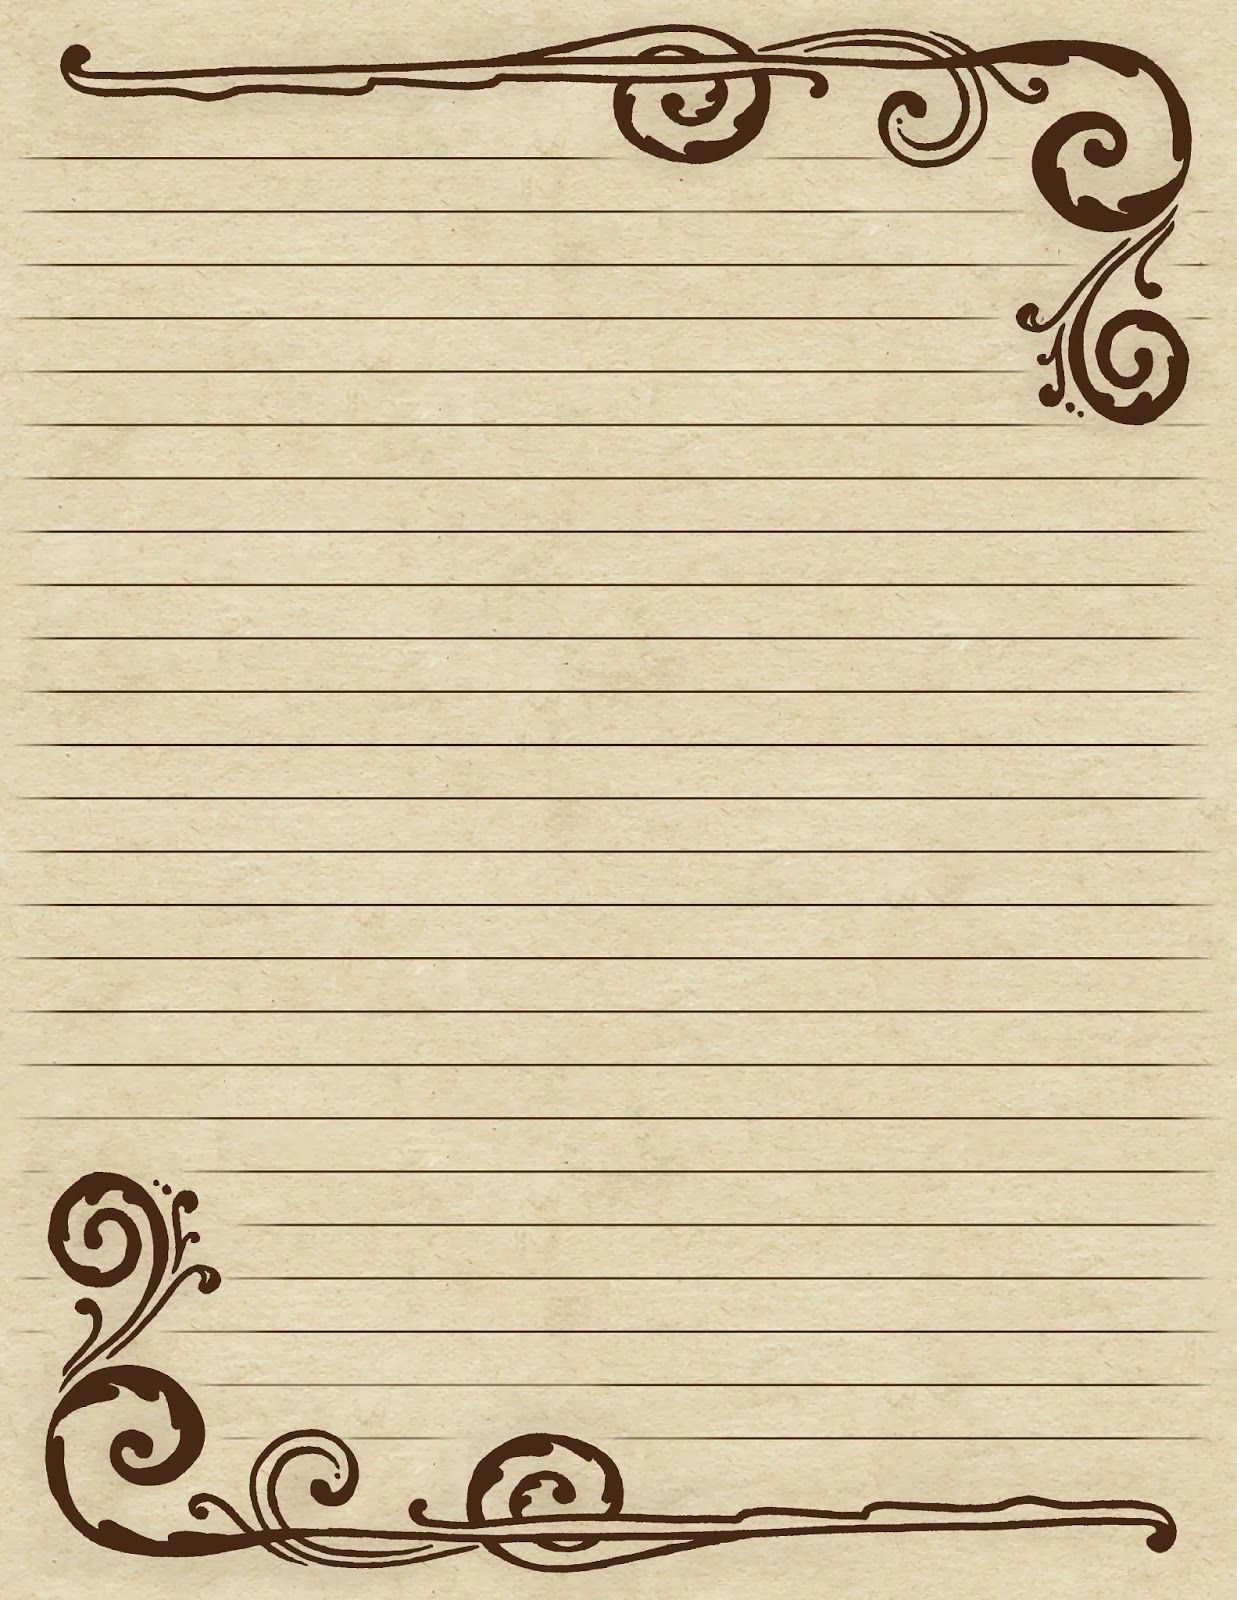 It is a photo of Obsessed How to Write a Letter on Lined Paper